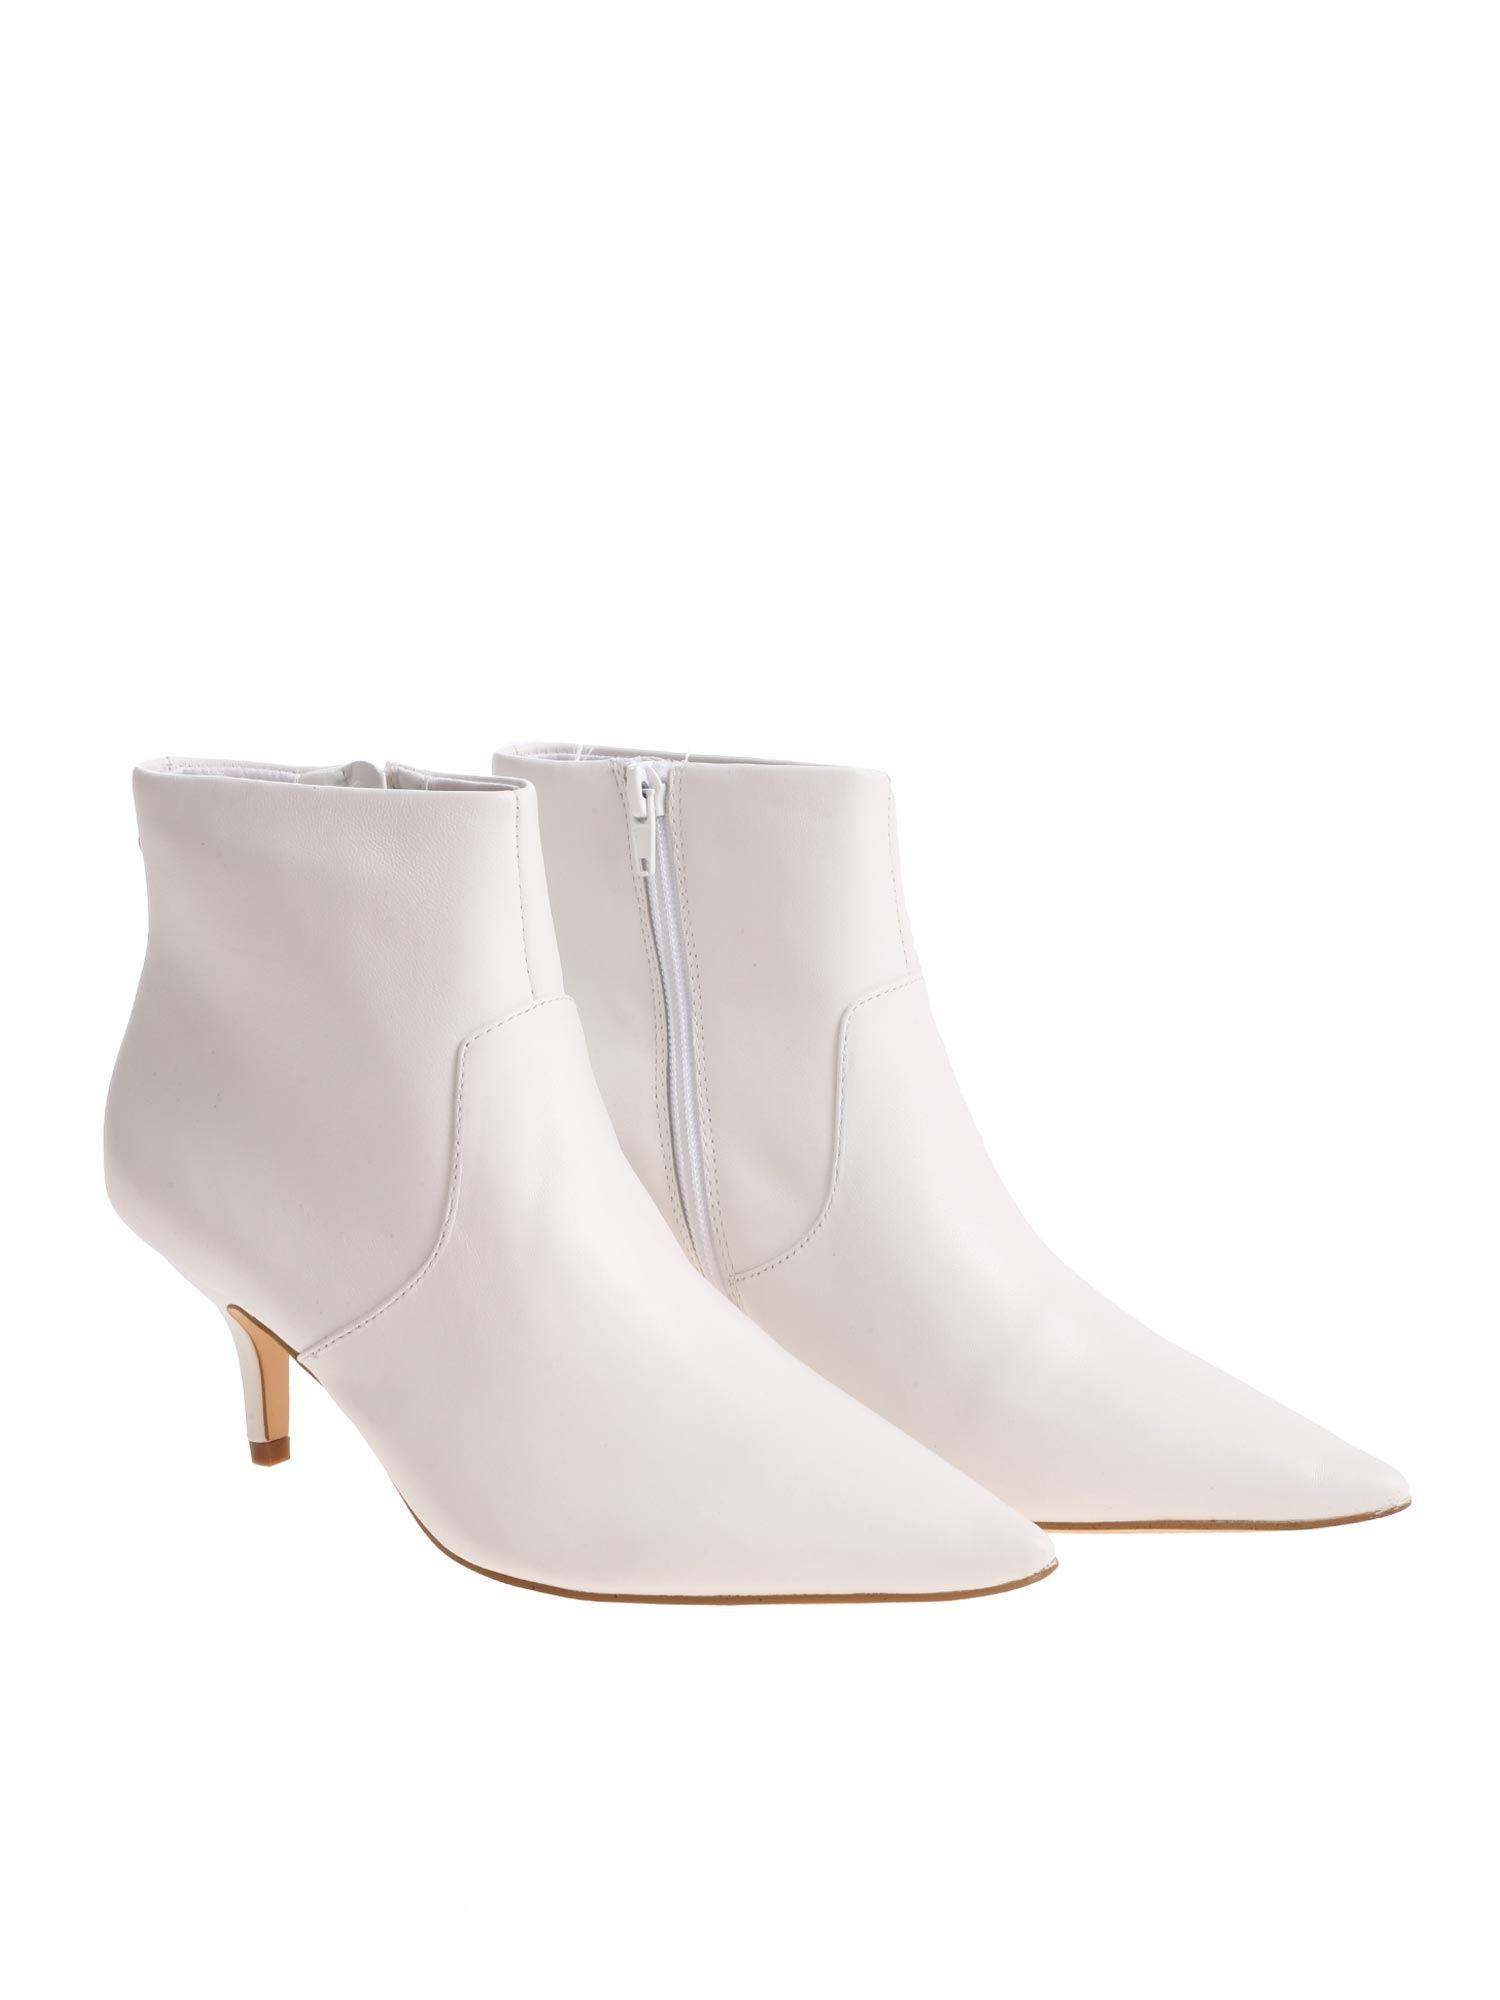 febc14e580e Lyst - Steve Madden 60mm Rome Leather Boots in White - Save 40%